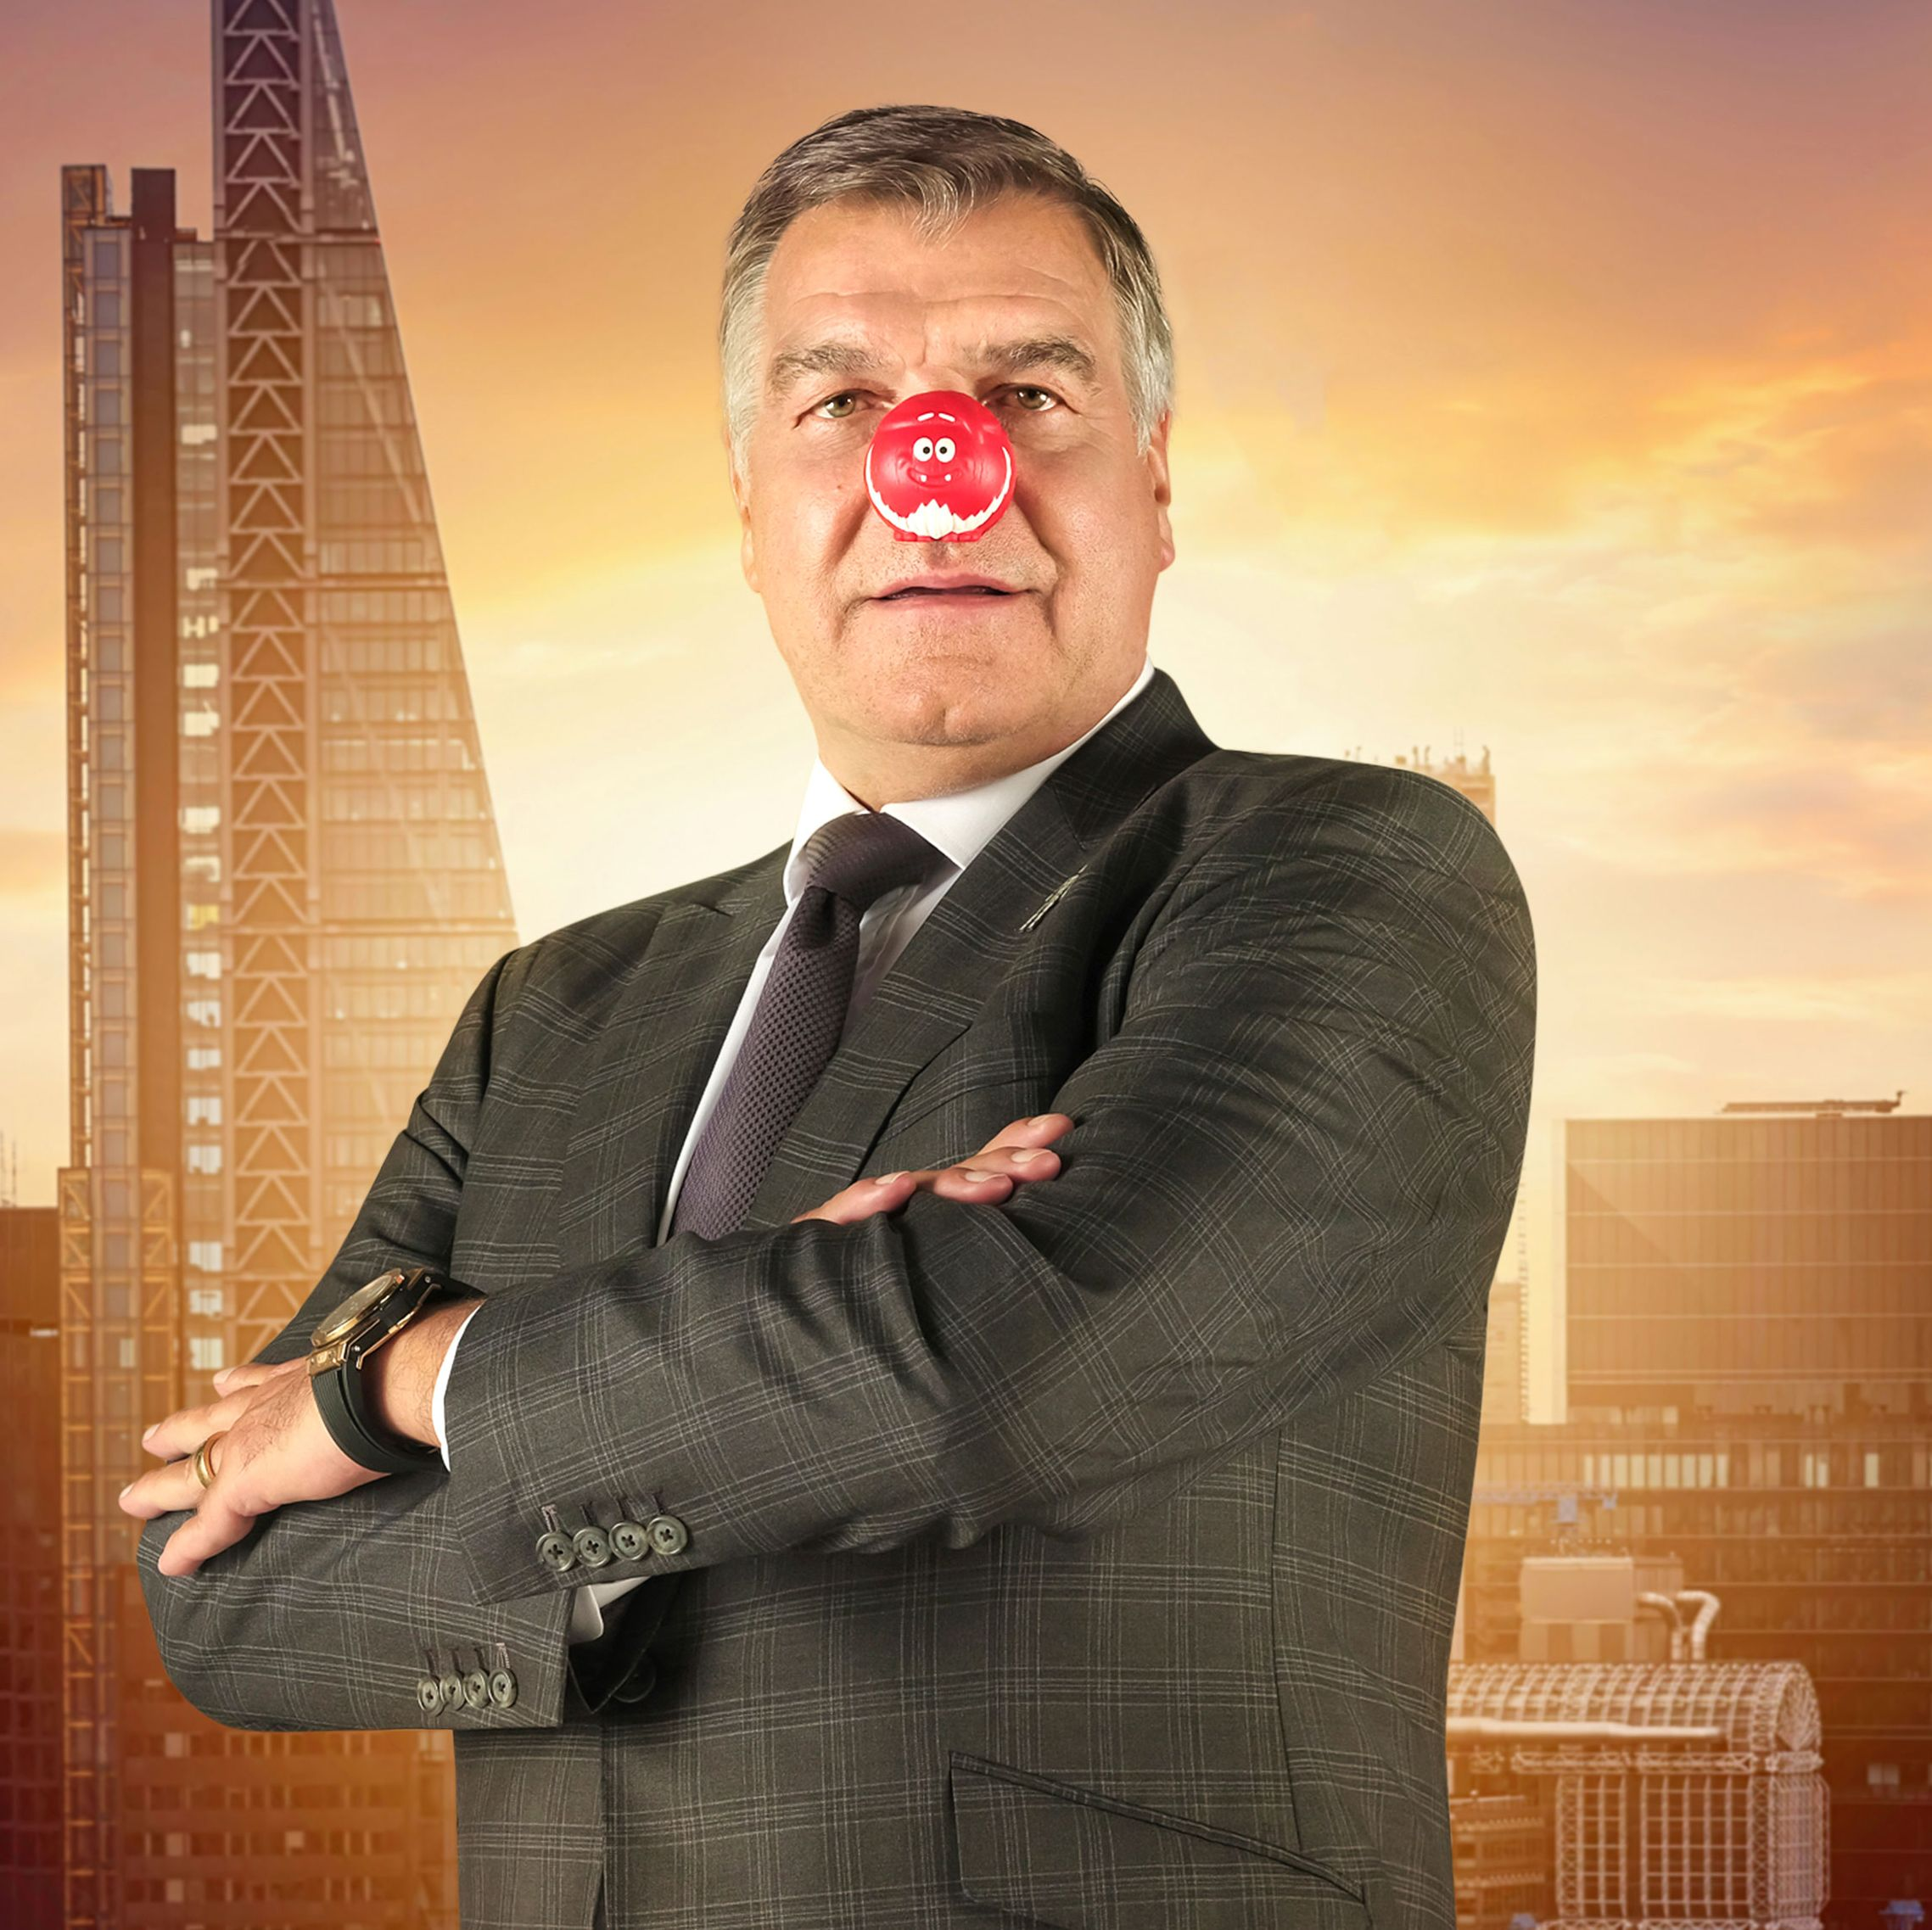 Celebrity Apprentice's Sam Allardyce slams show for stitching him up in the editing